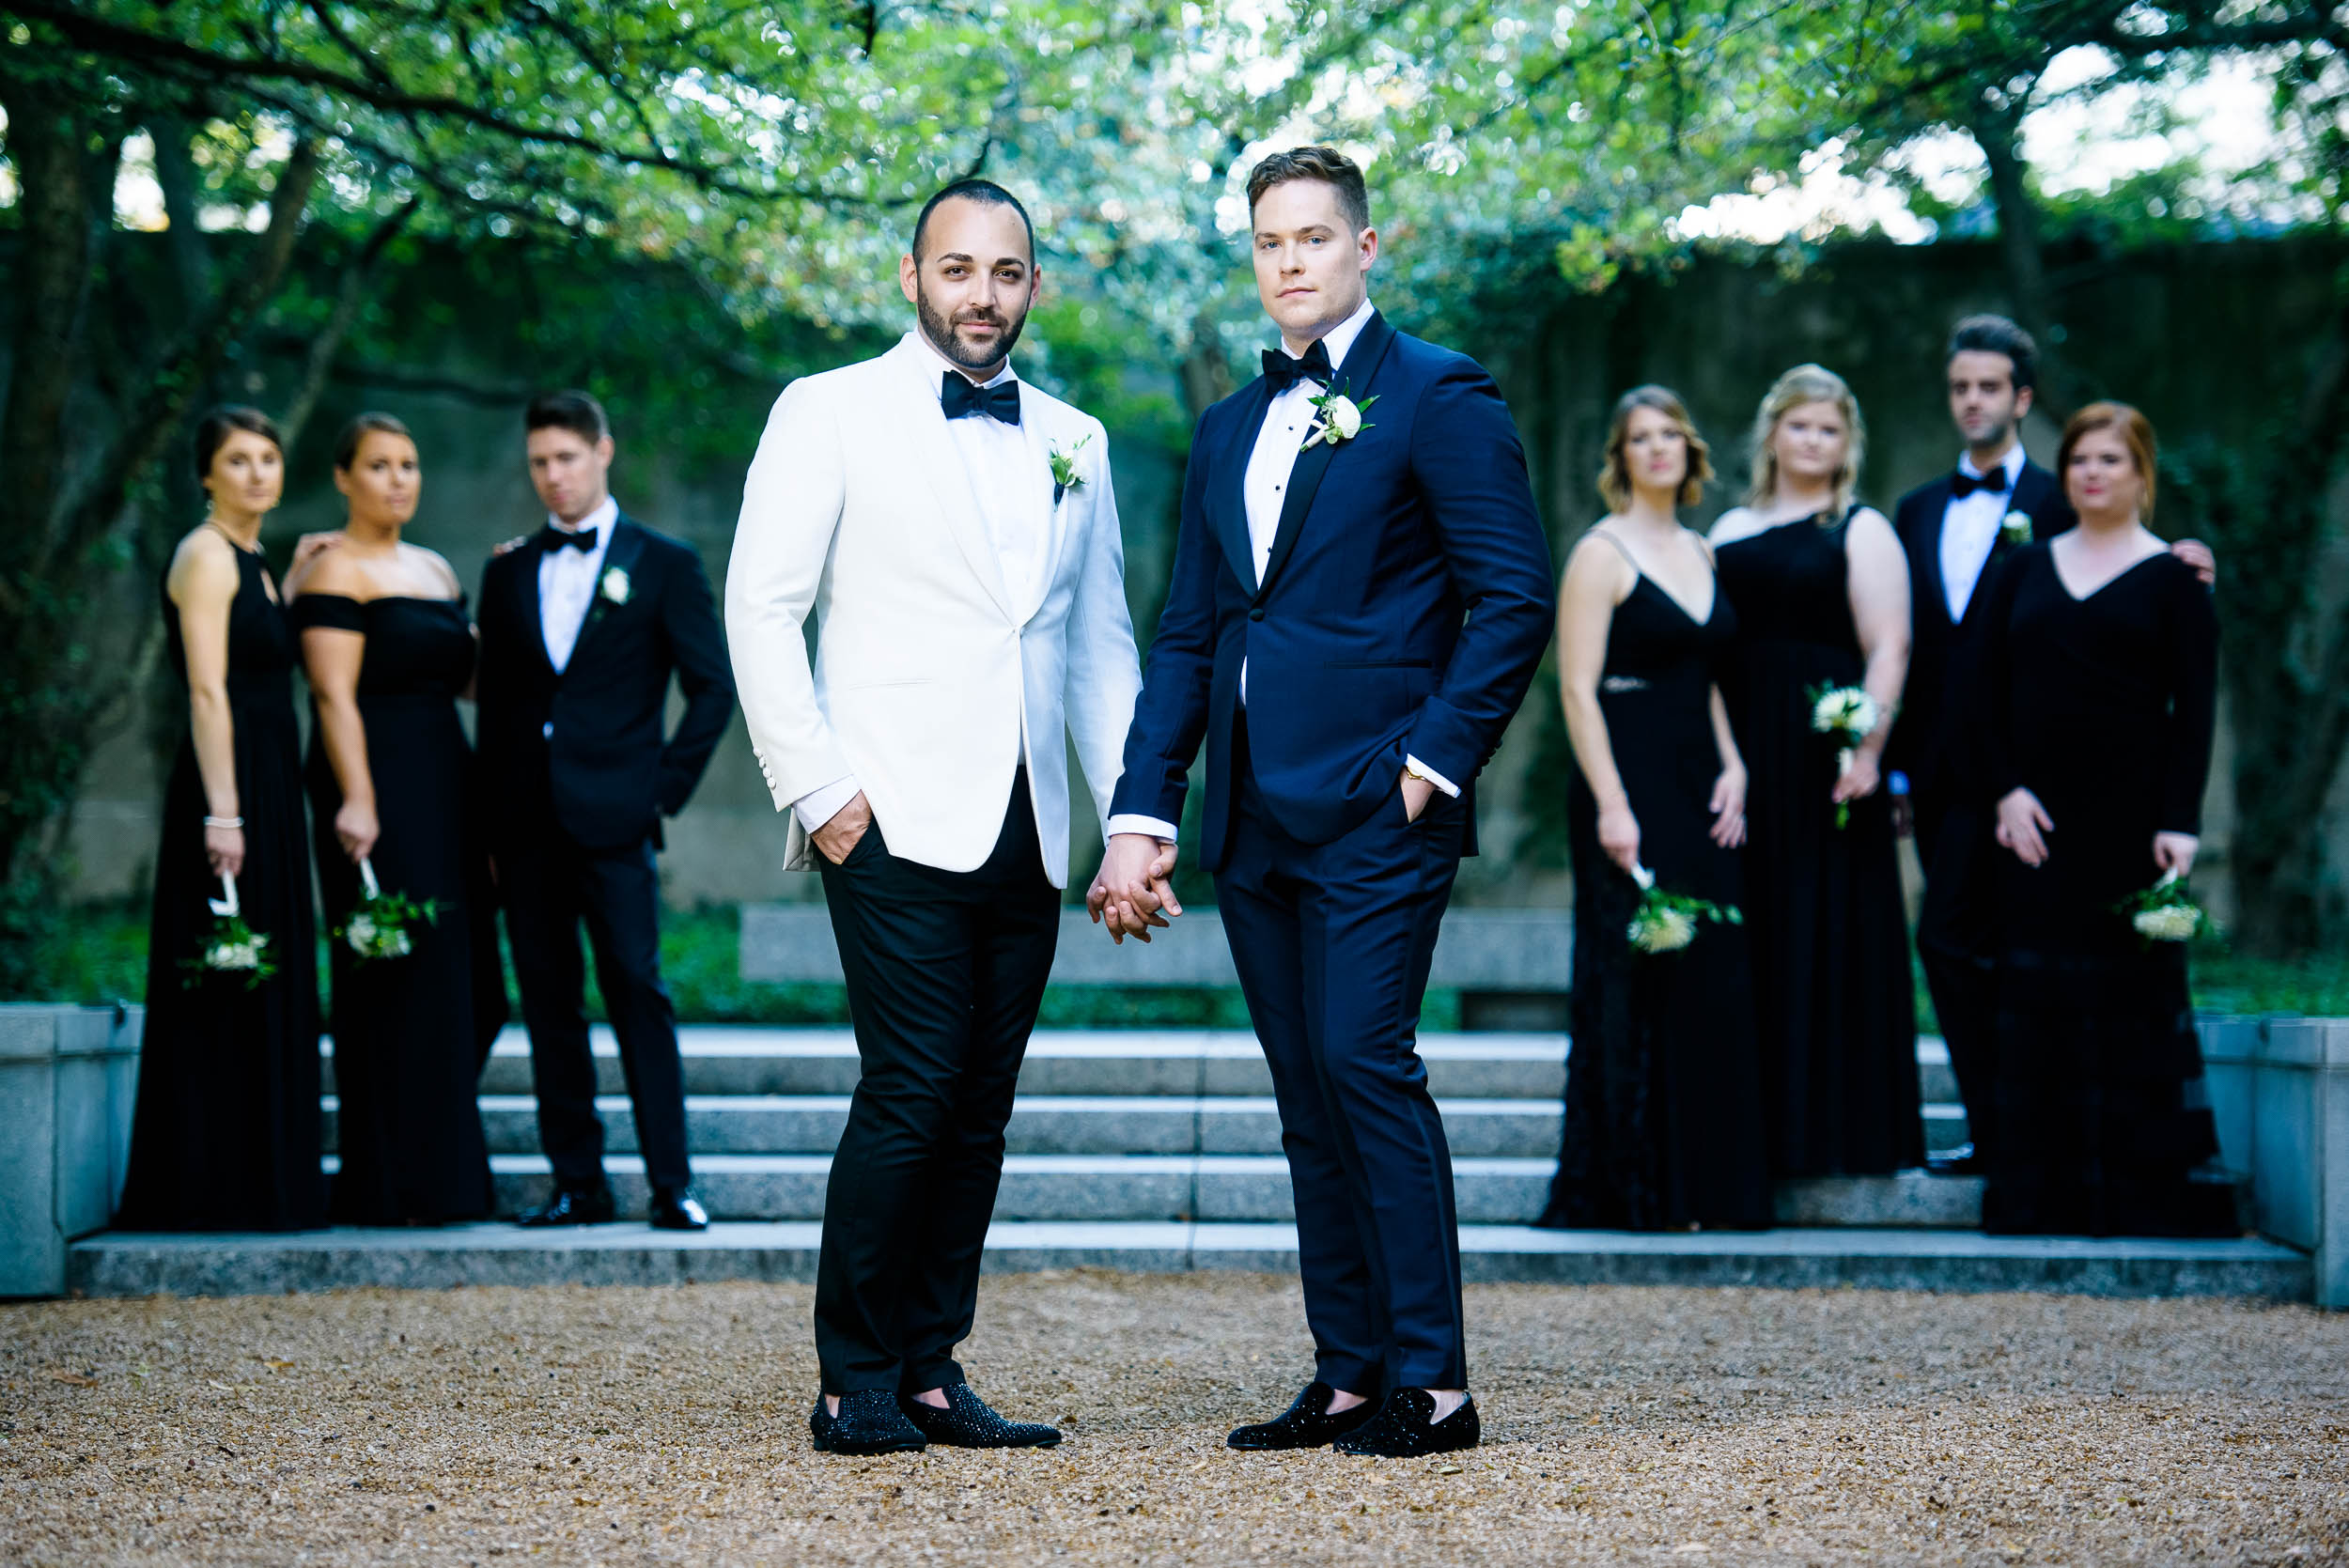 Grooms posing with wedding party for luxurious fall wedding at the Chicago Symphony Center captured by J. Brown Photography. See more wedding ideas at jbrownphotography.com!